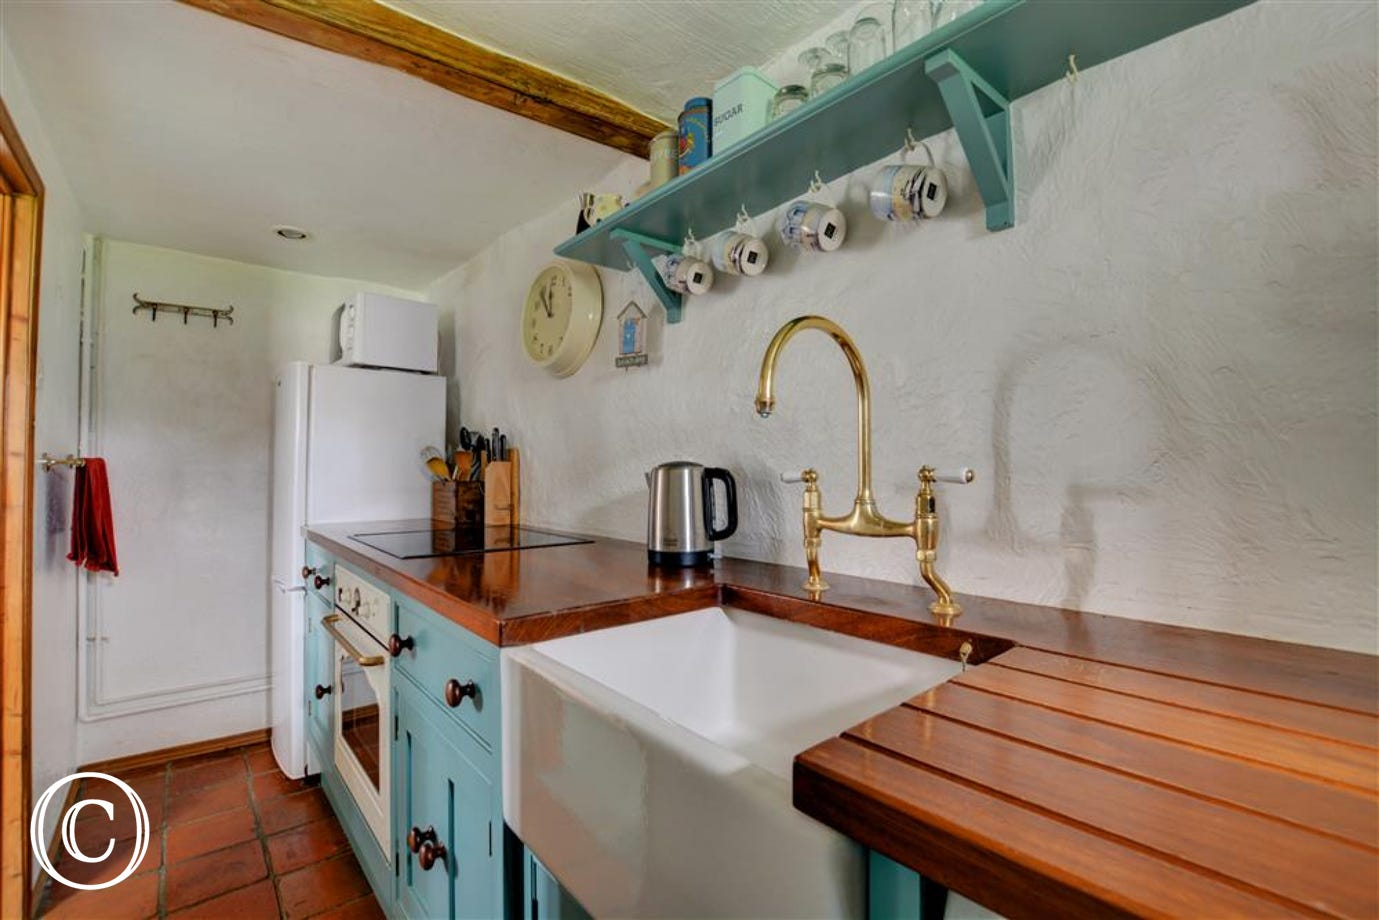 Small galley kitchen with cottage styed kitchen cupboards, wooden work surfaces and butler styled sink.